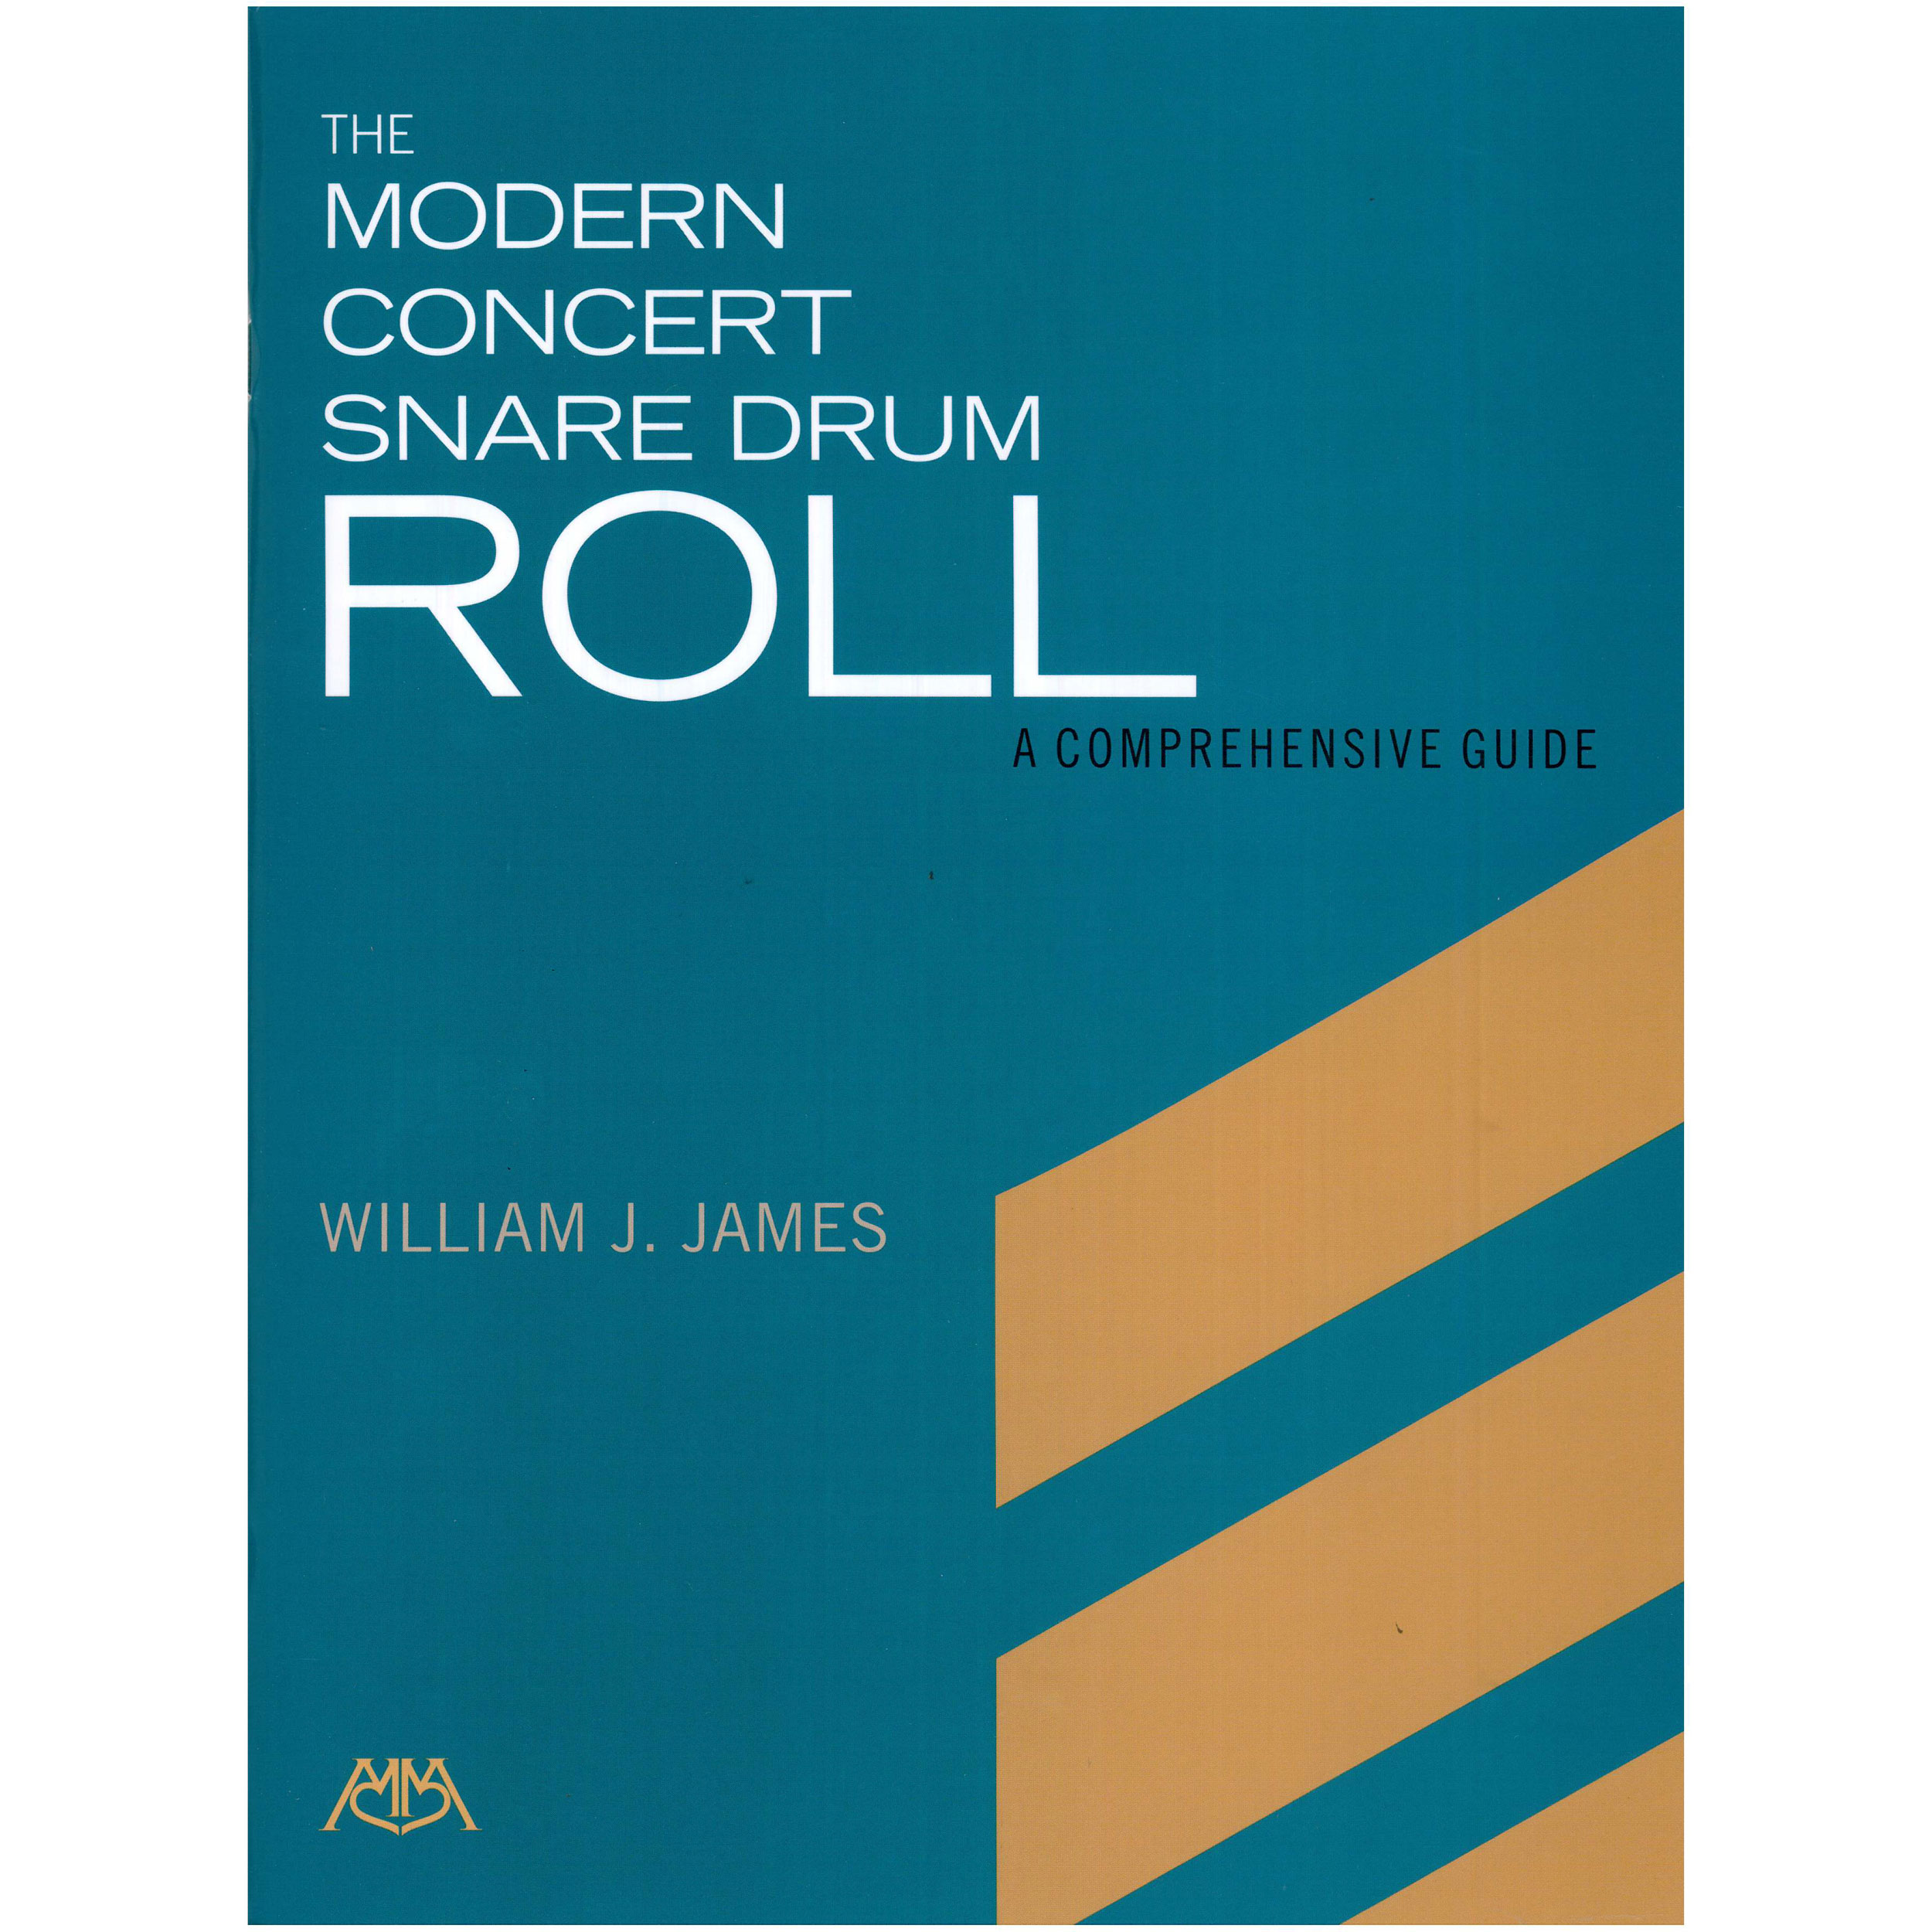 The Modern Concert Snare Drum Roll by William J. James